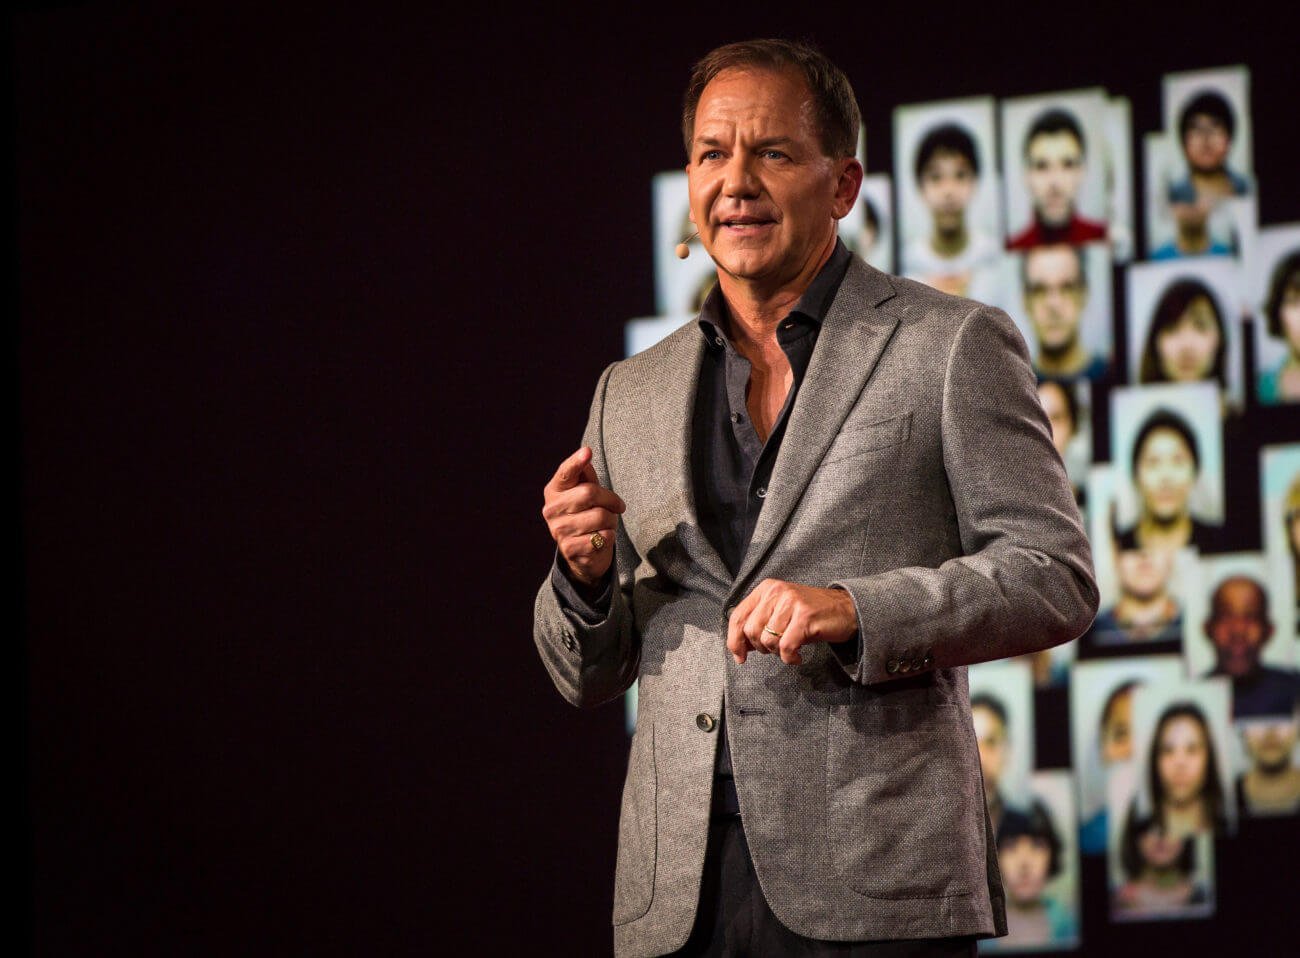 Billionaire Paul Tudor Jones Wants To Catch His Memoir Straight On Bitcoin